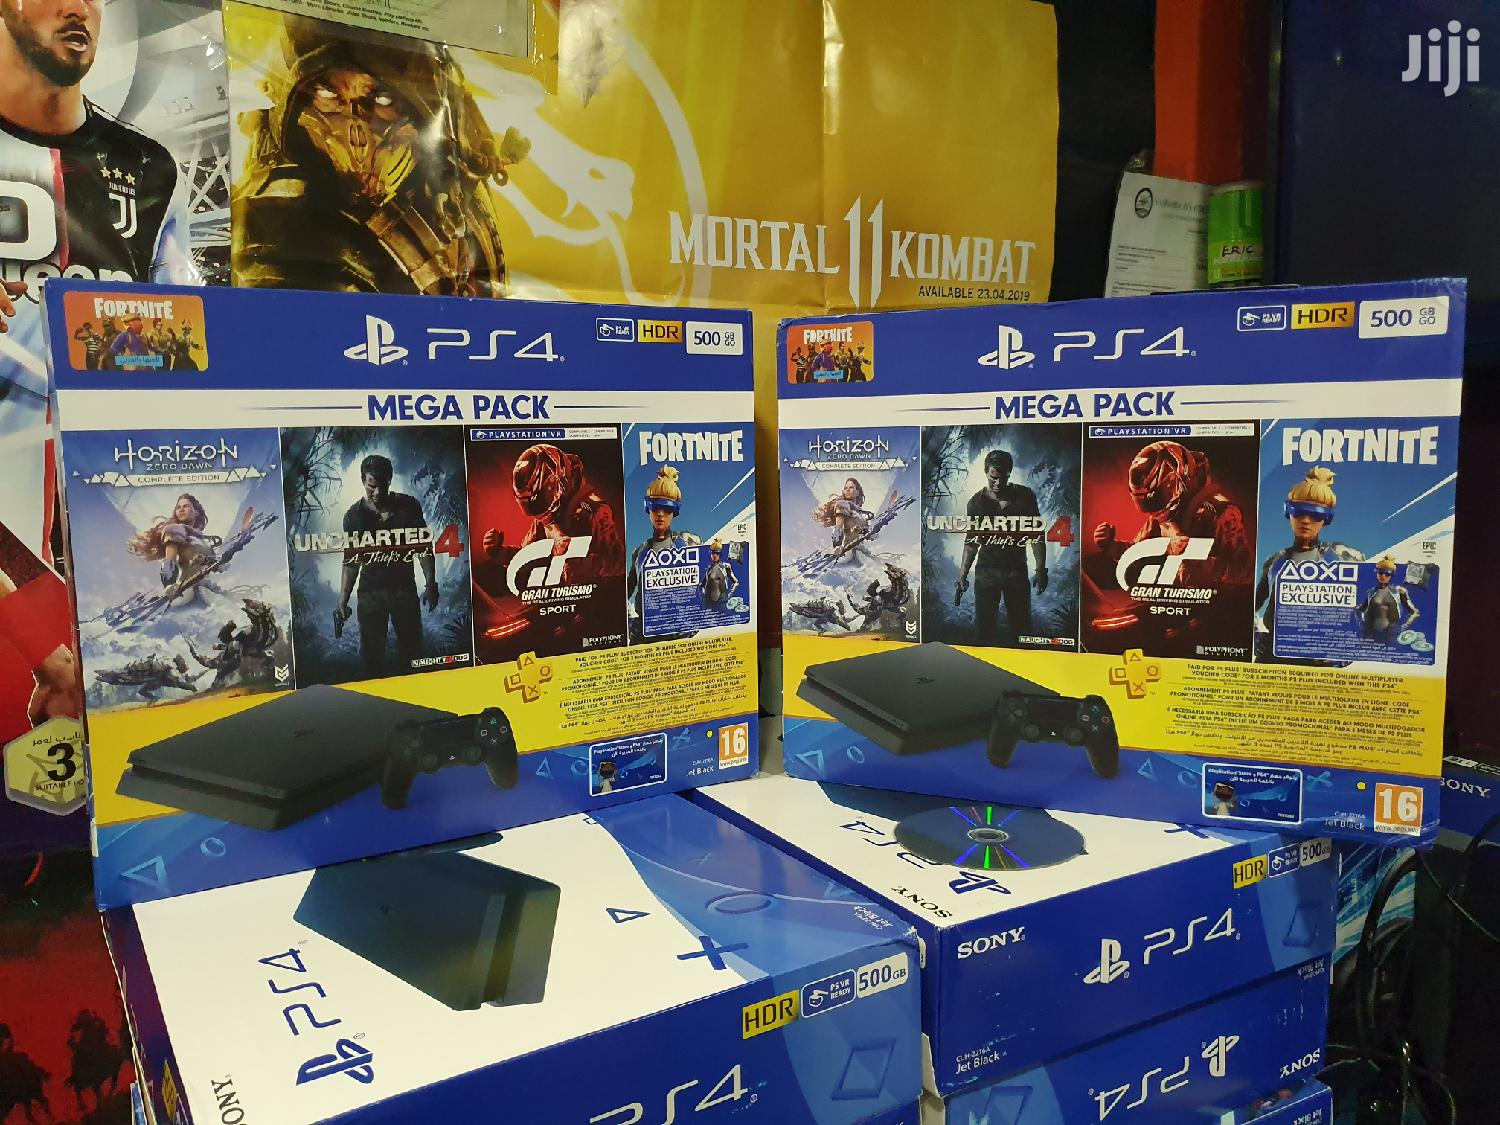 Ps4 Hits Bundle With 4 Games in Nairobi ...